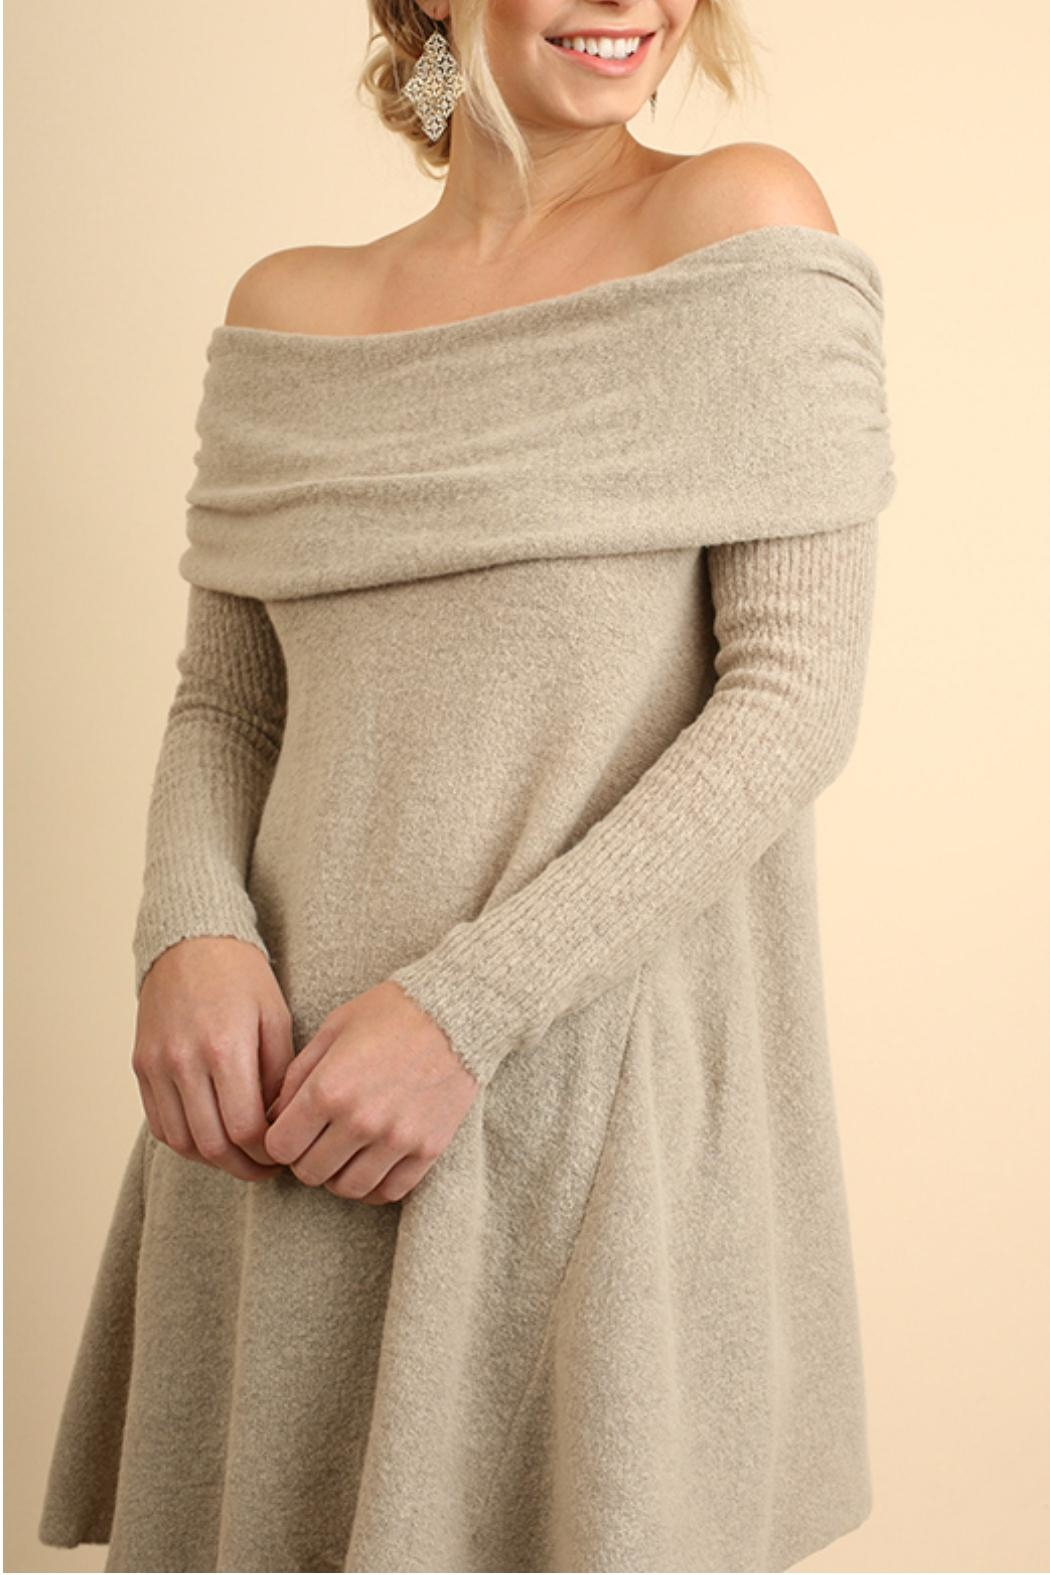 Umgee USA Off Shoulder Sleeve Sweater - Side Cropped Image